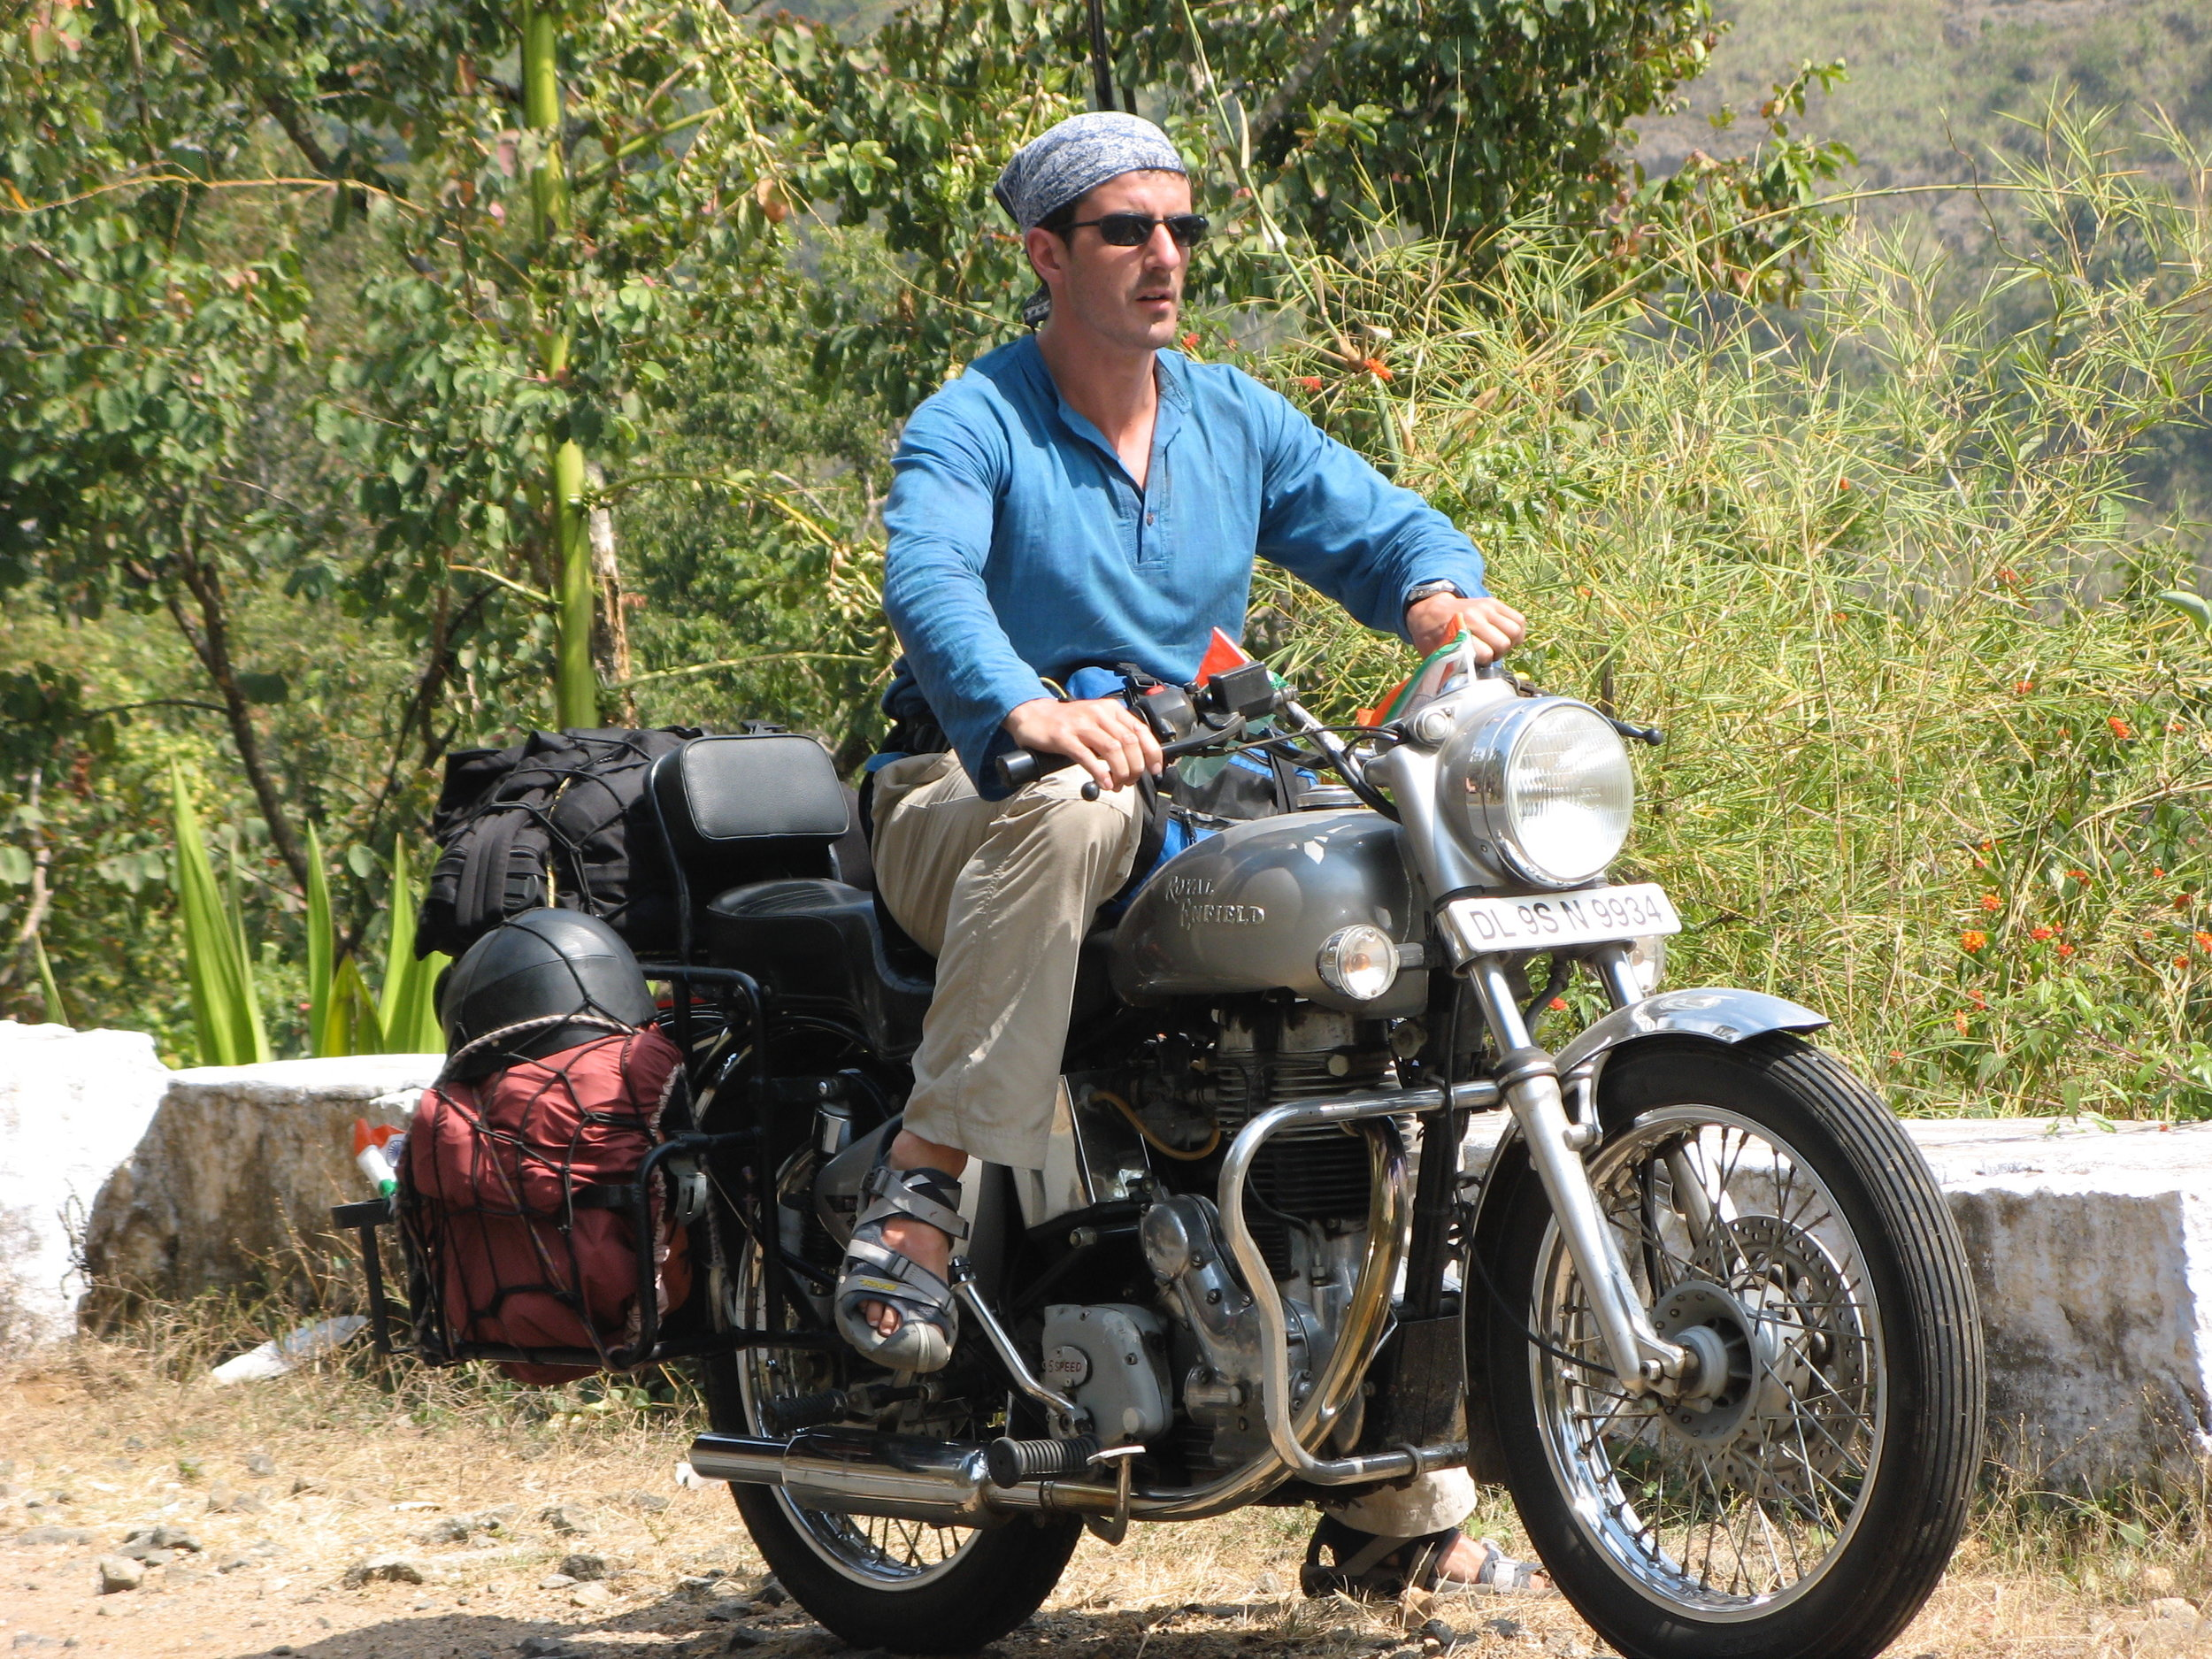 Andrew-Benfield-Adventure-Rider-Radio-Motorcycle-Podcast-23.jpg